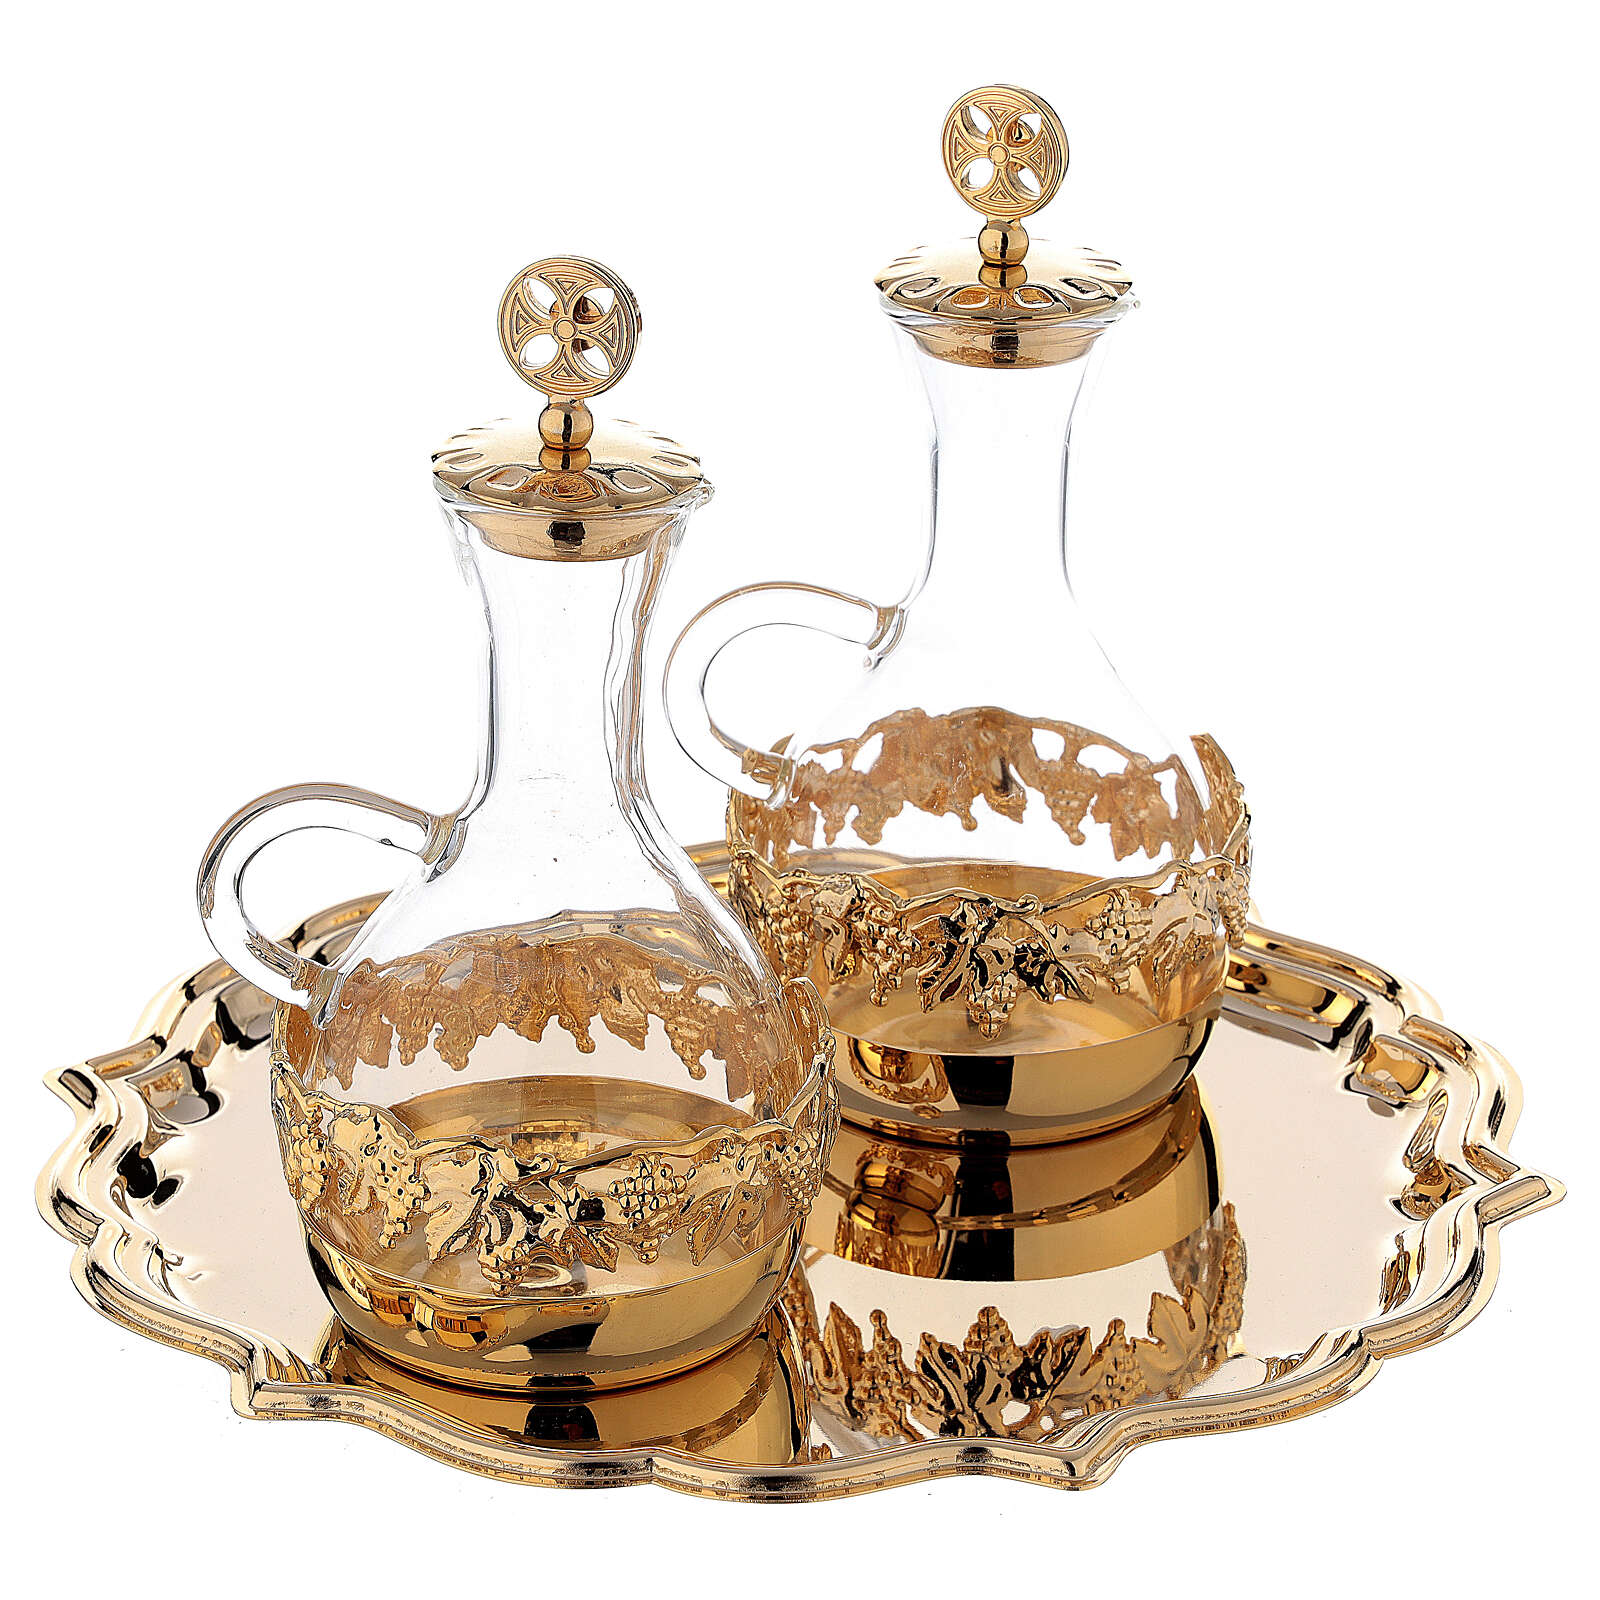 Venise cruet set 200 ml 24-karat gold plated brass 4